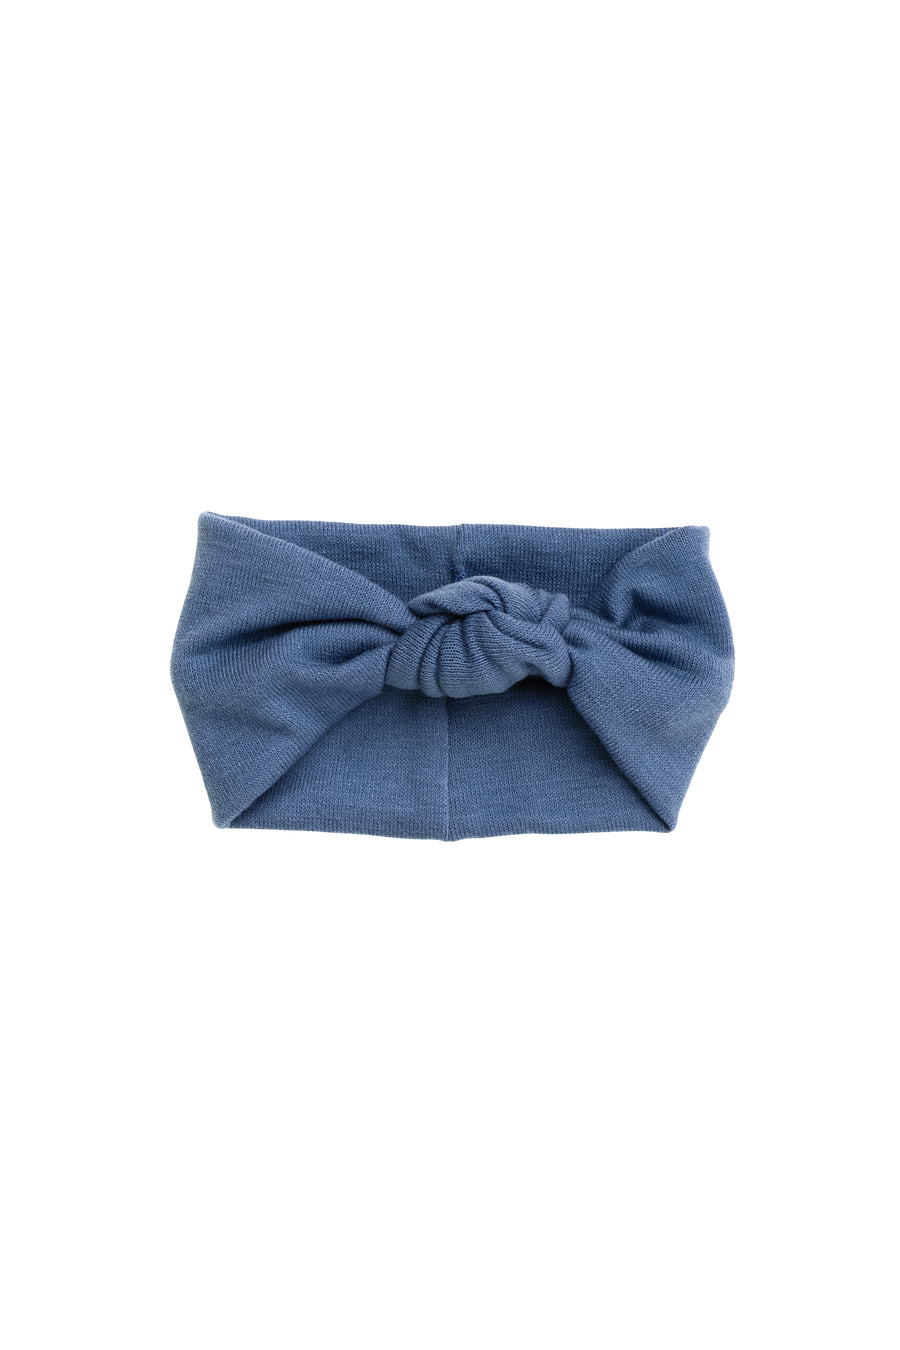 Knot Wrap - Antique Blue Wool - PROJECT 6, modest fashion